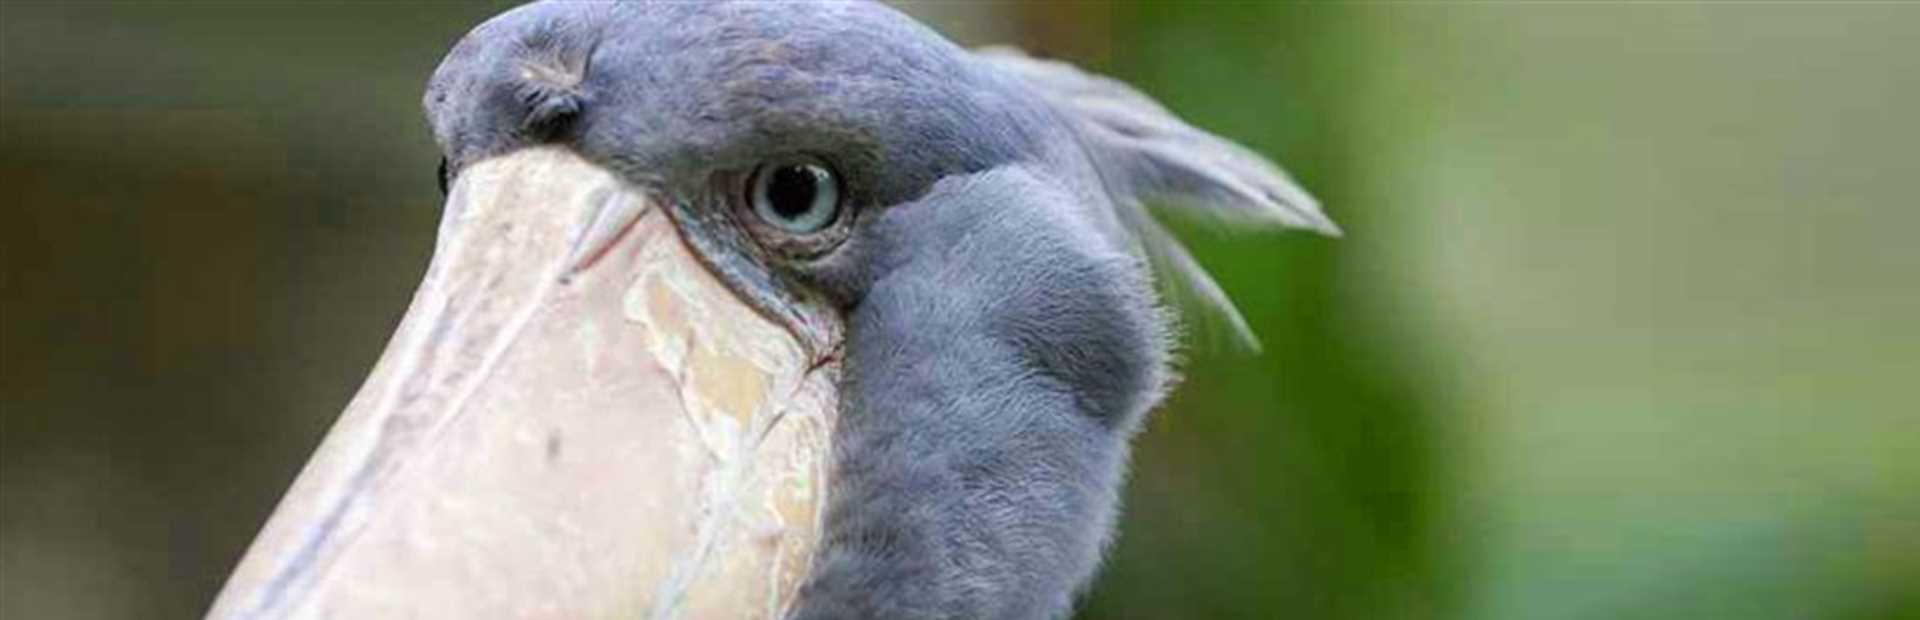 Zambia - Shoebill Safari